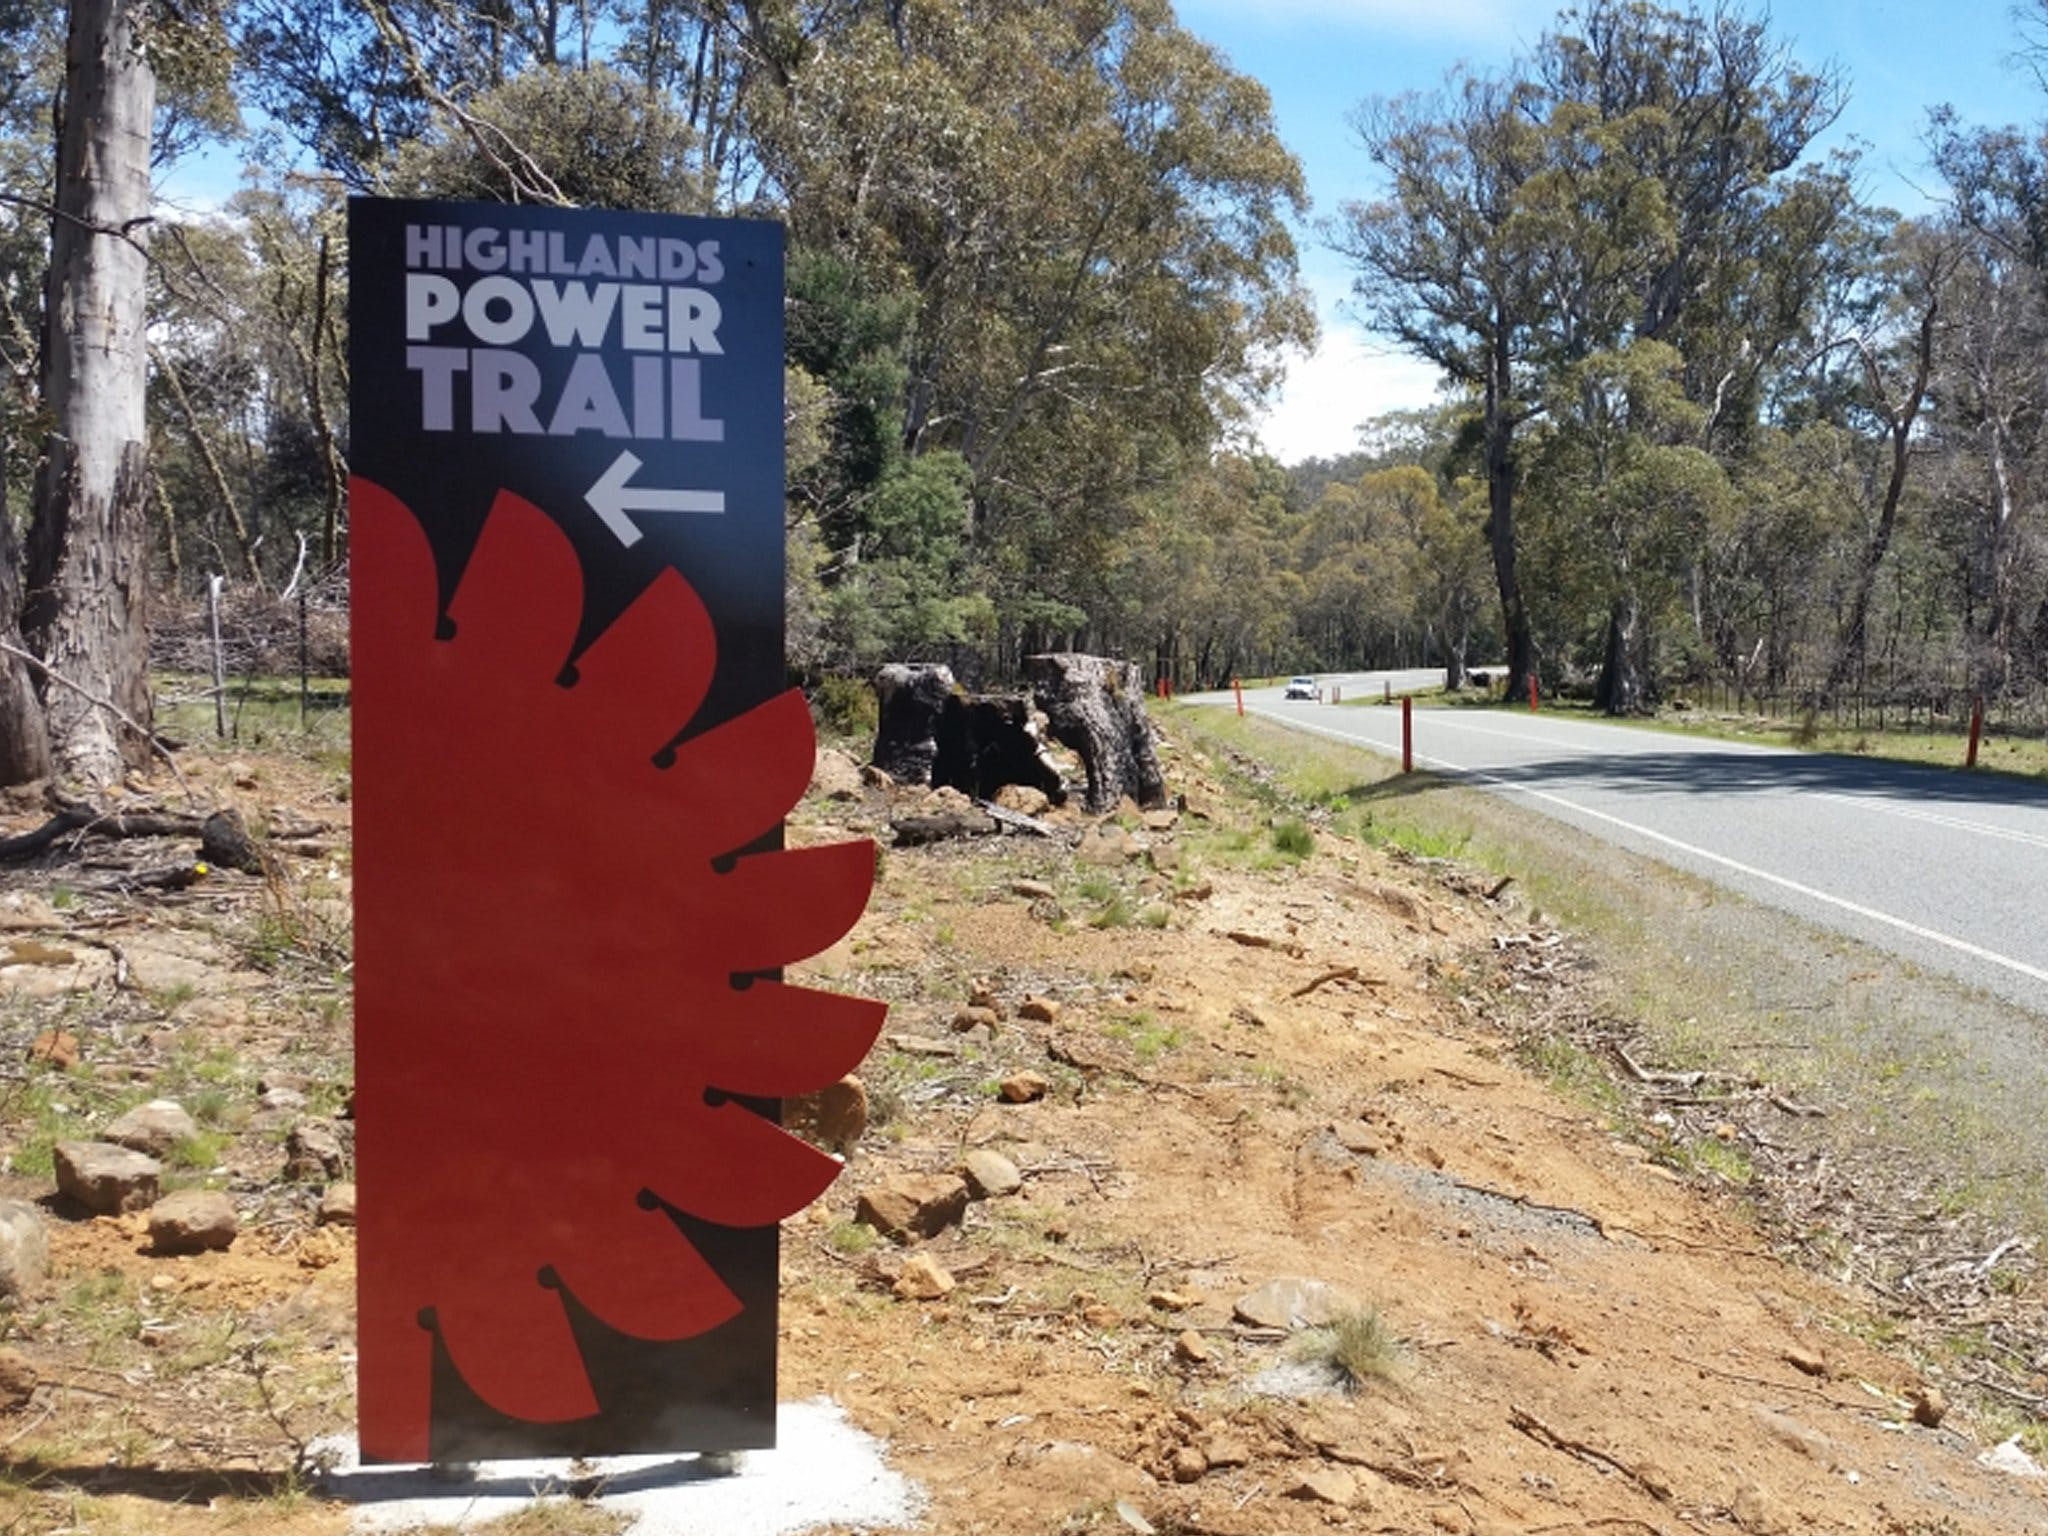 Highlands Power Trail - Accommodation in Bendigo